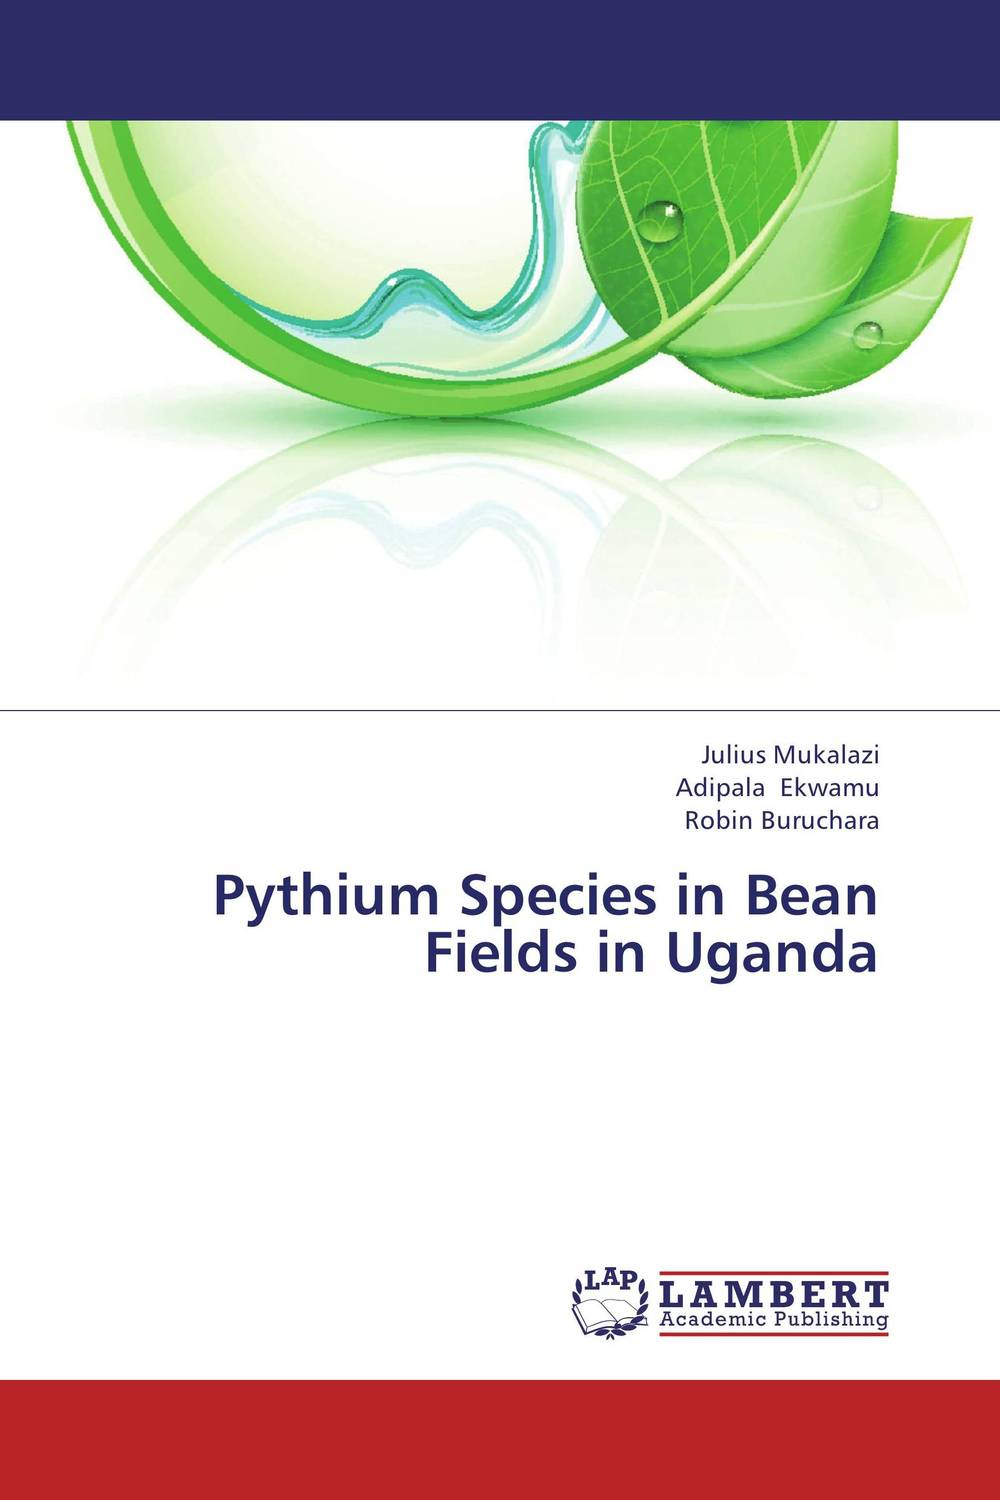 Pythium Species in Bean Fields in Uganda the teeth with root canal students to practice root canal preparation and filling actually